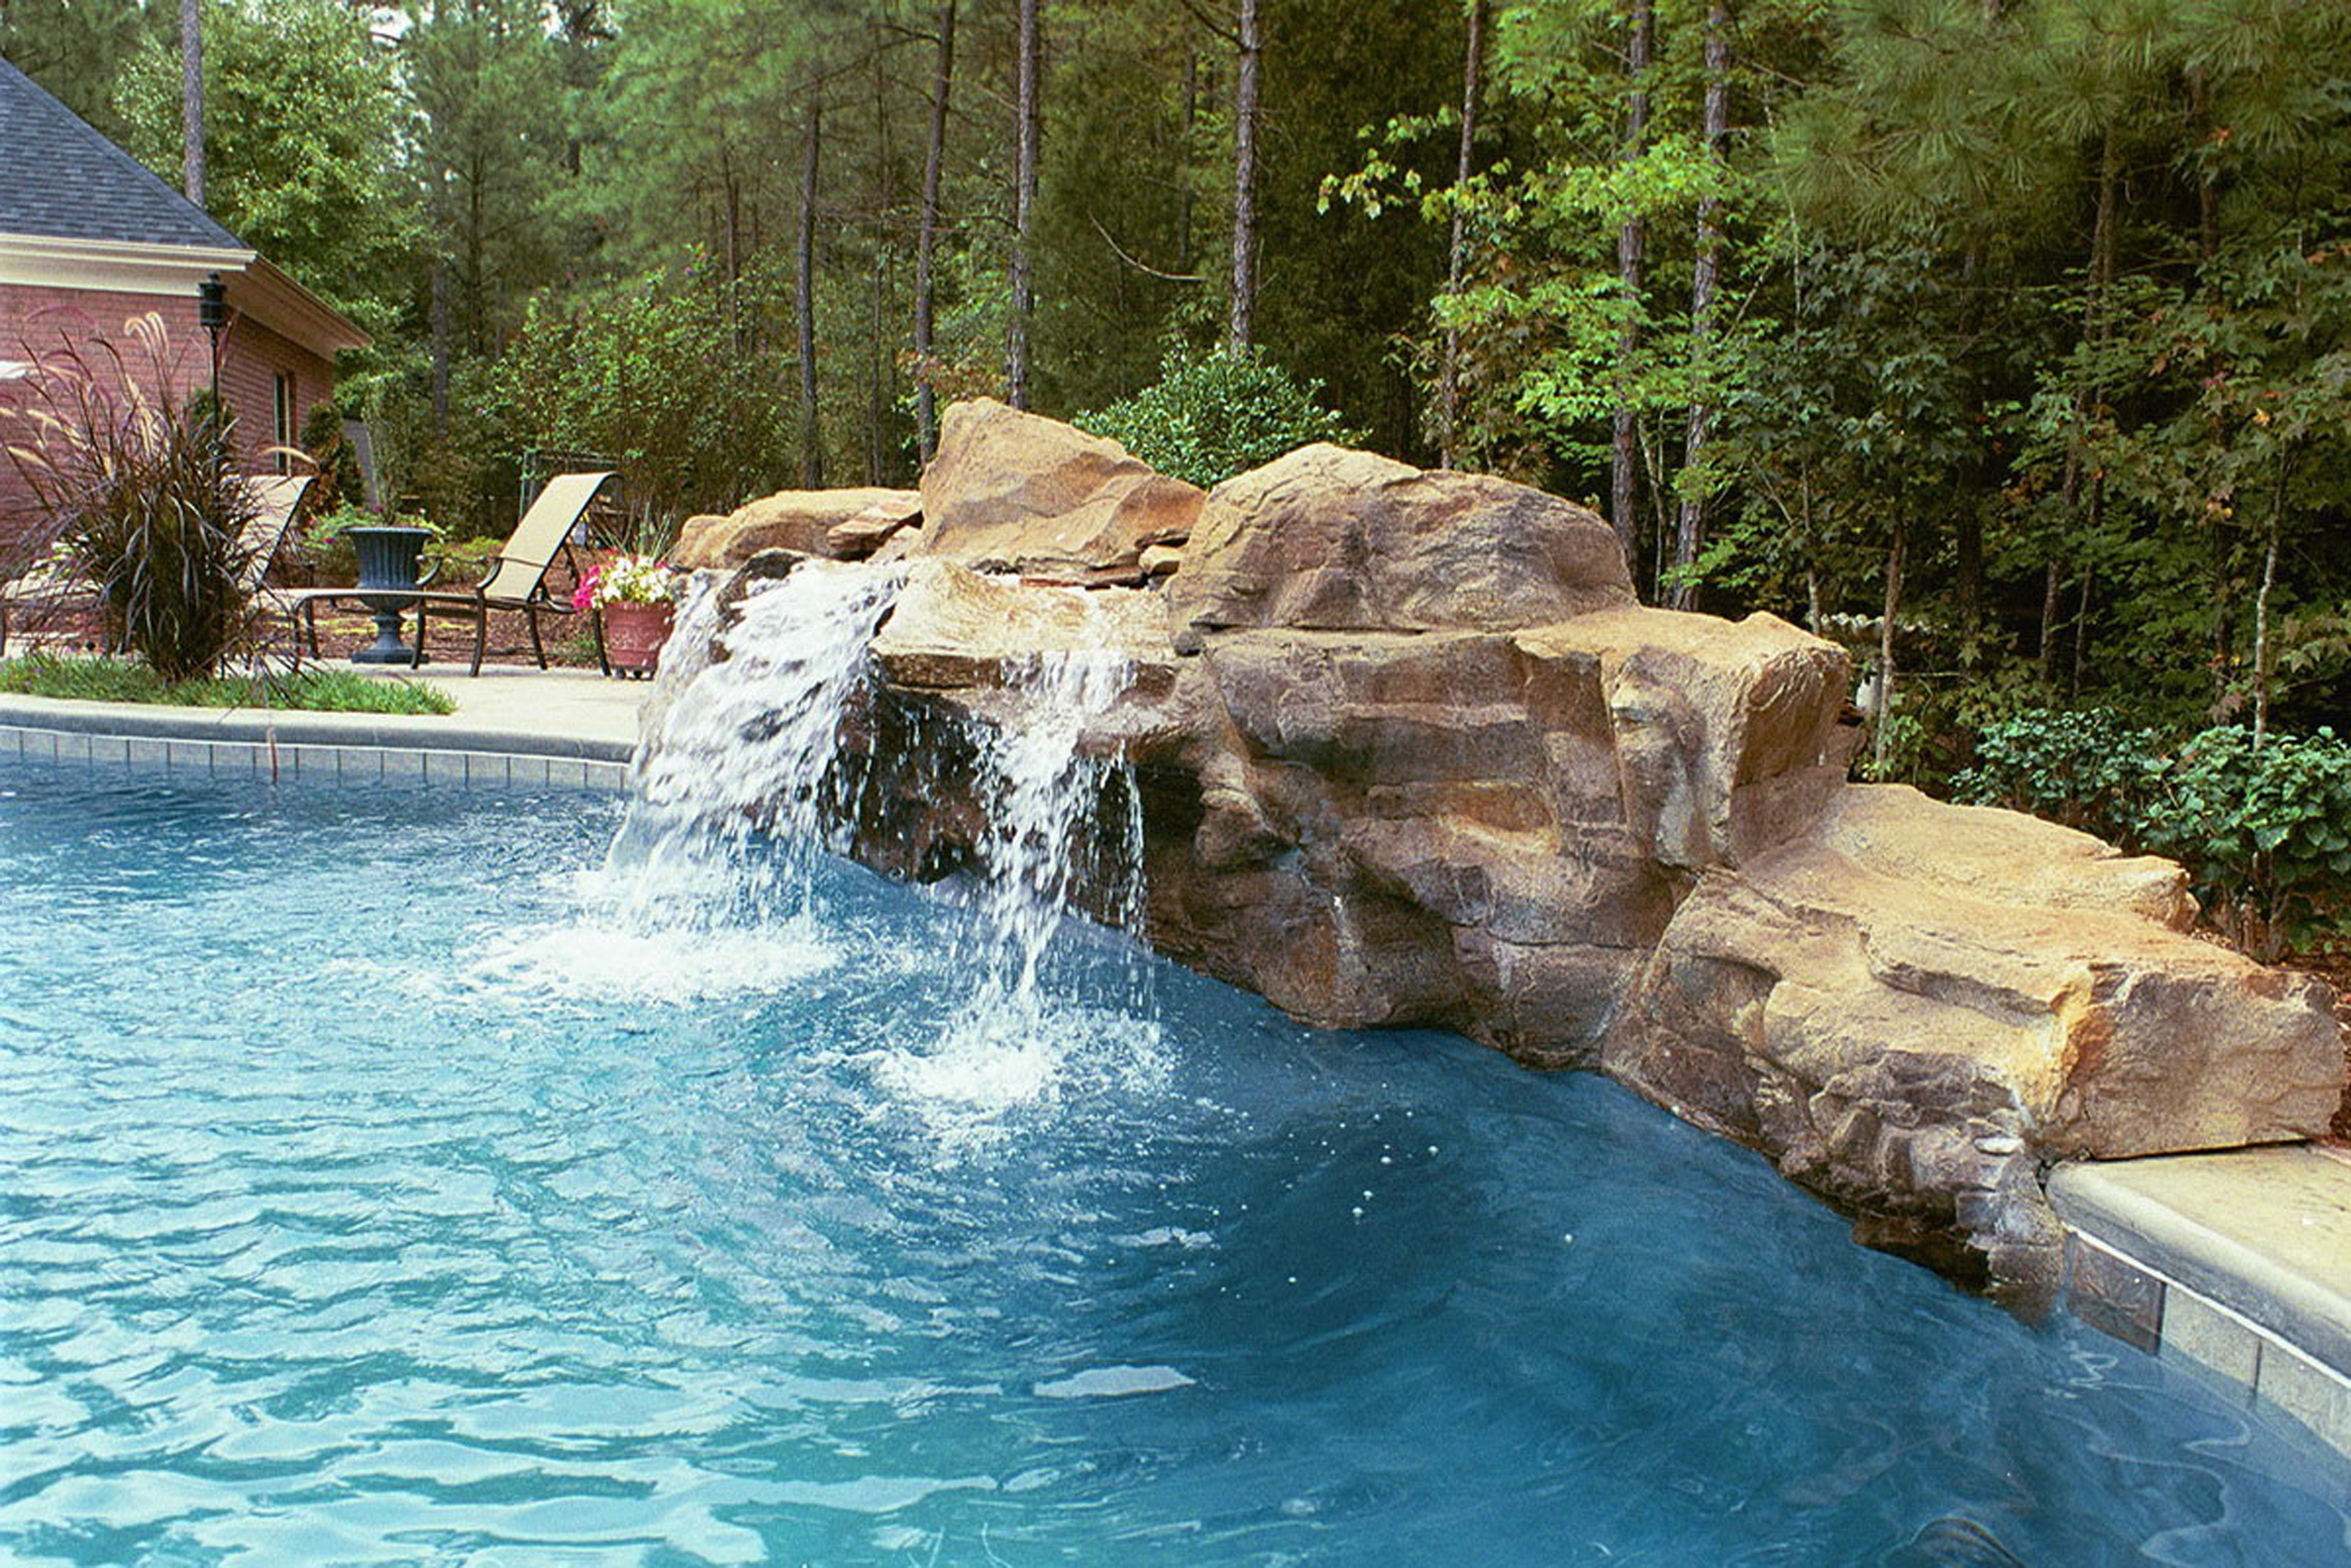 Amazing Pool Design Inspiration With Blue Pool Water And Brown Stones With Waterfall Beautiful Pool Design Inspiration (Image 18 of 28)